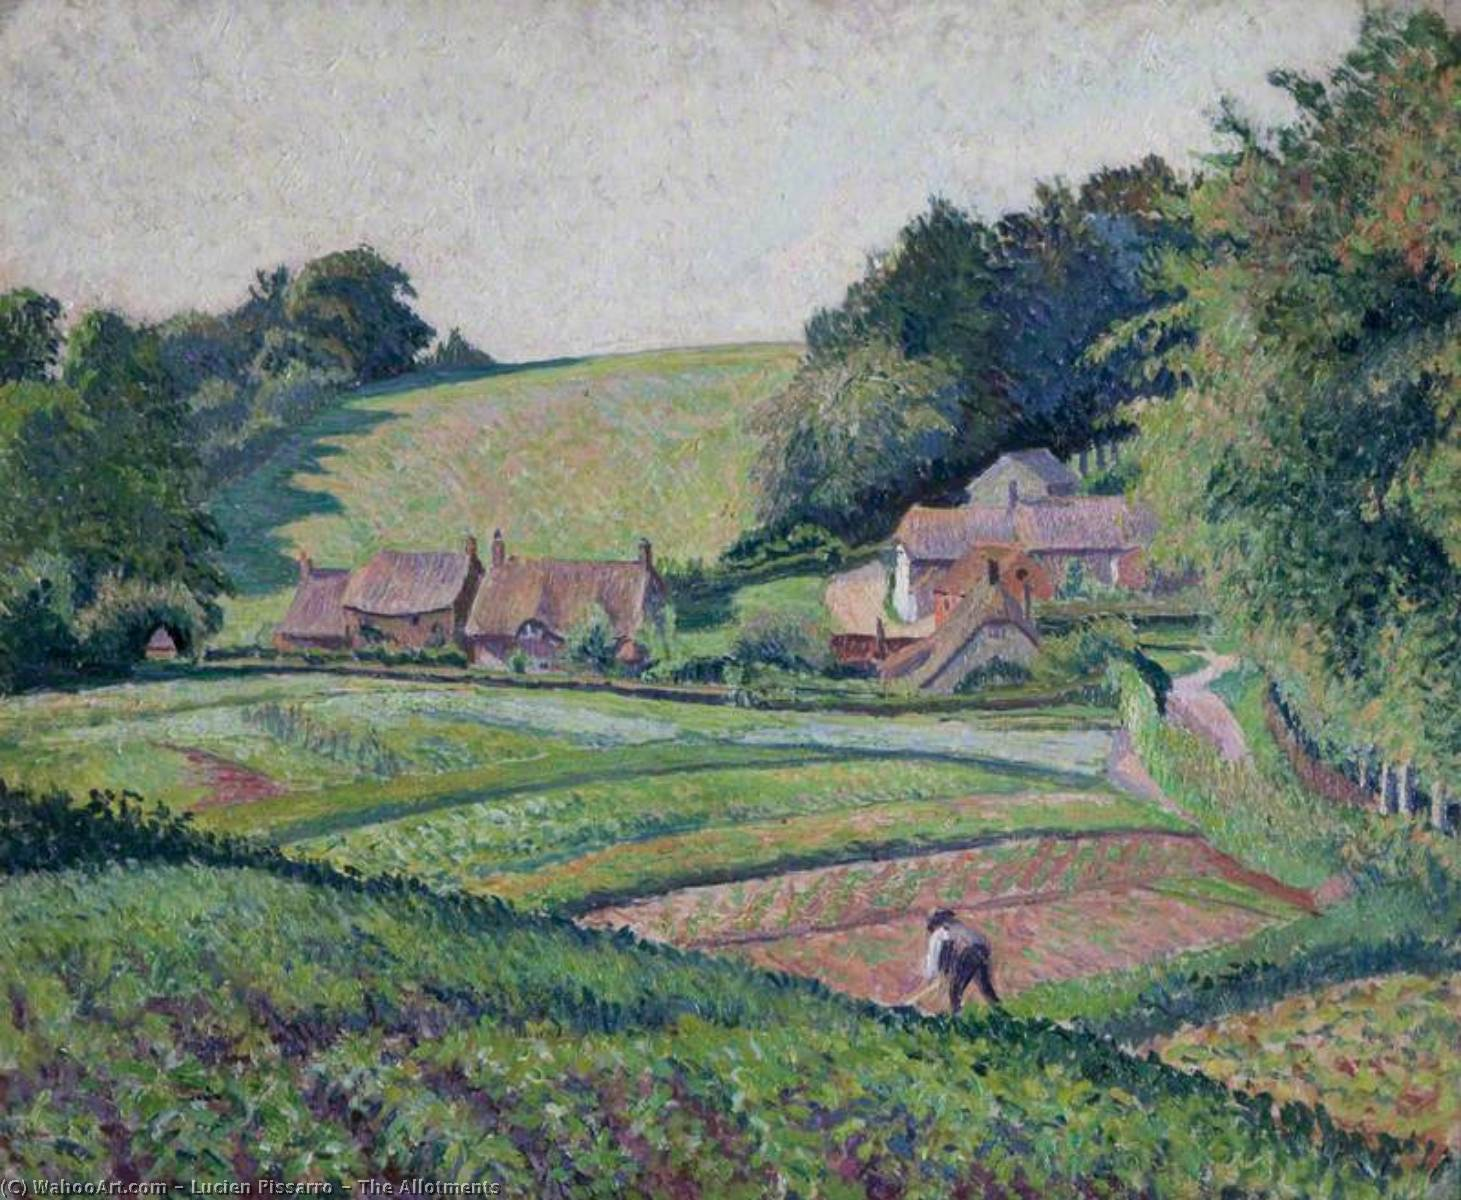 les allotments, 1917 de Lucien Pissarro (1830-1944) | Reproduction Peinture | WahooArt.com